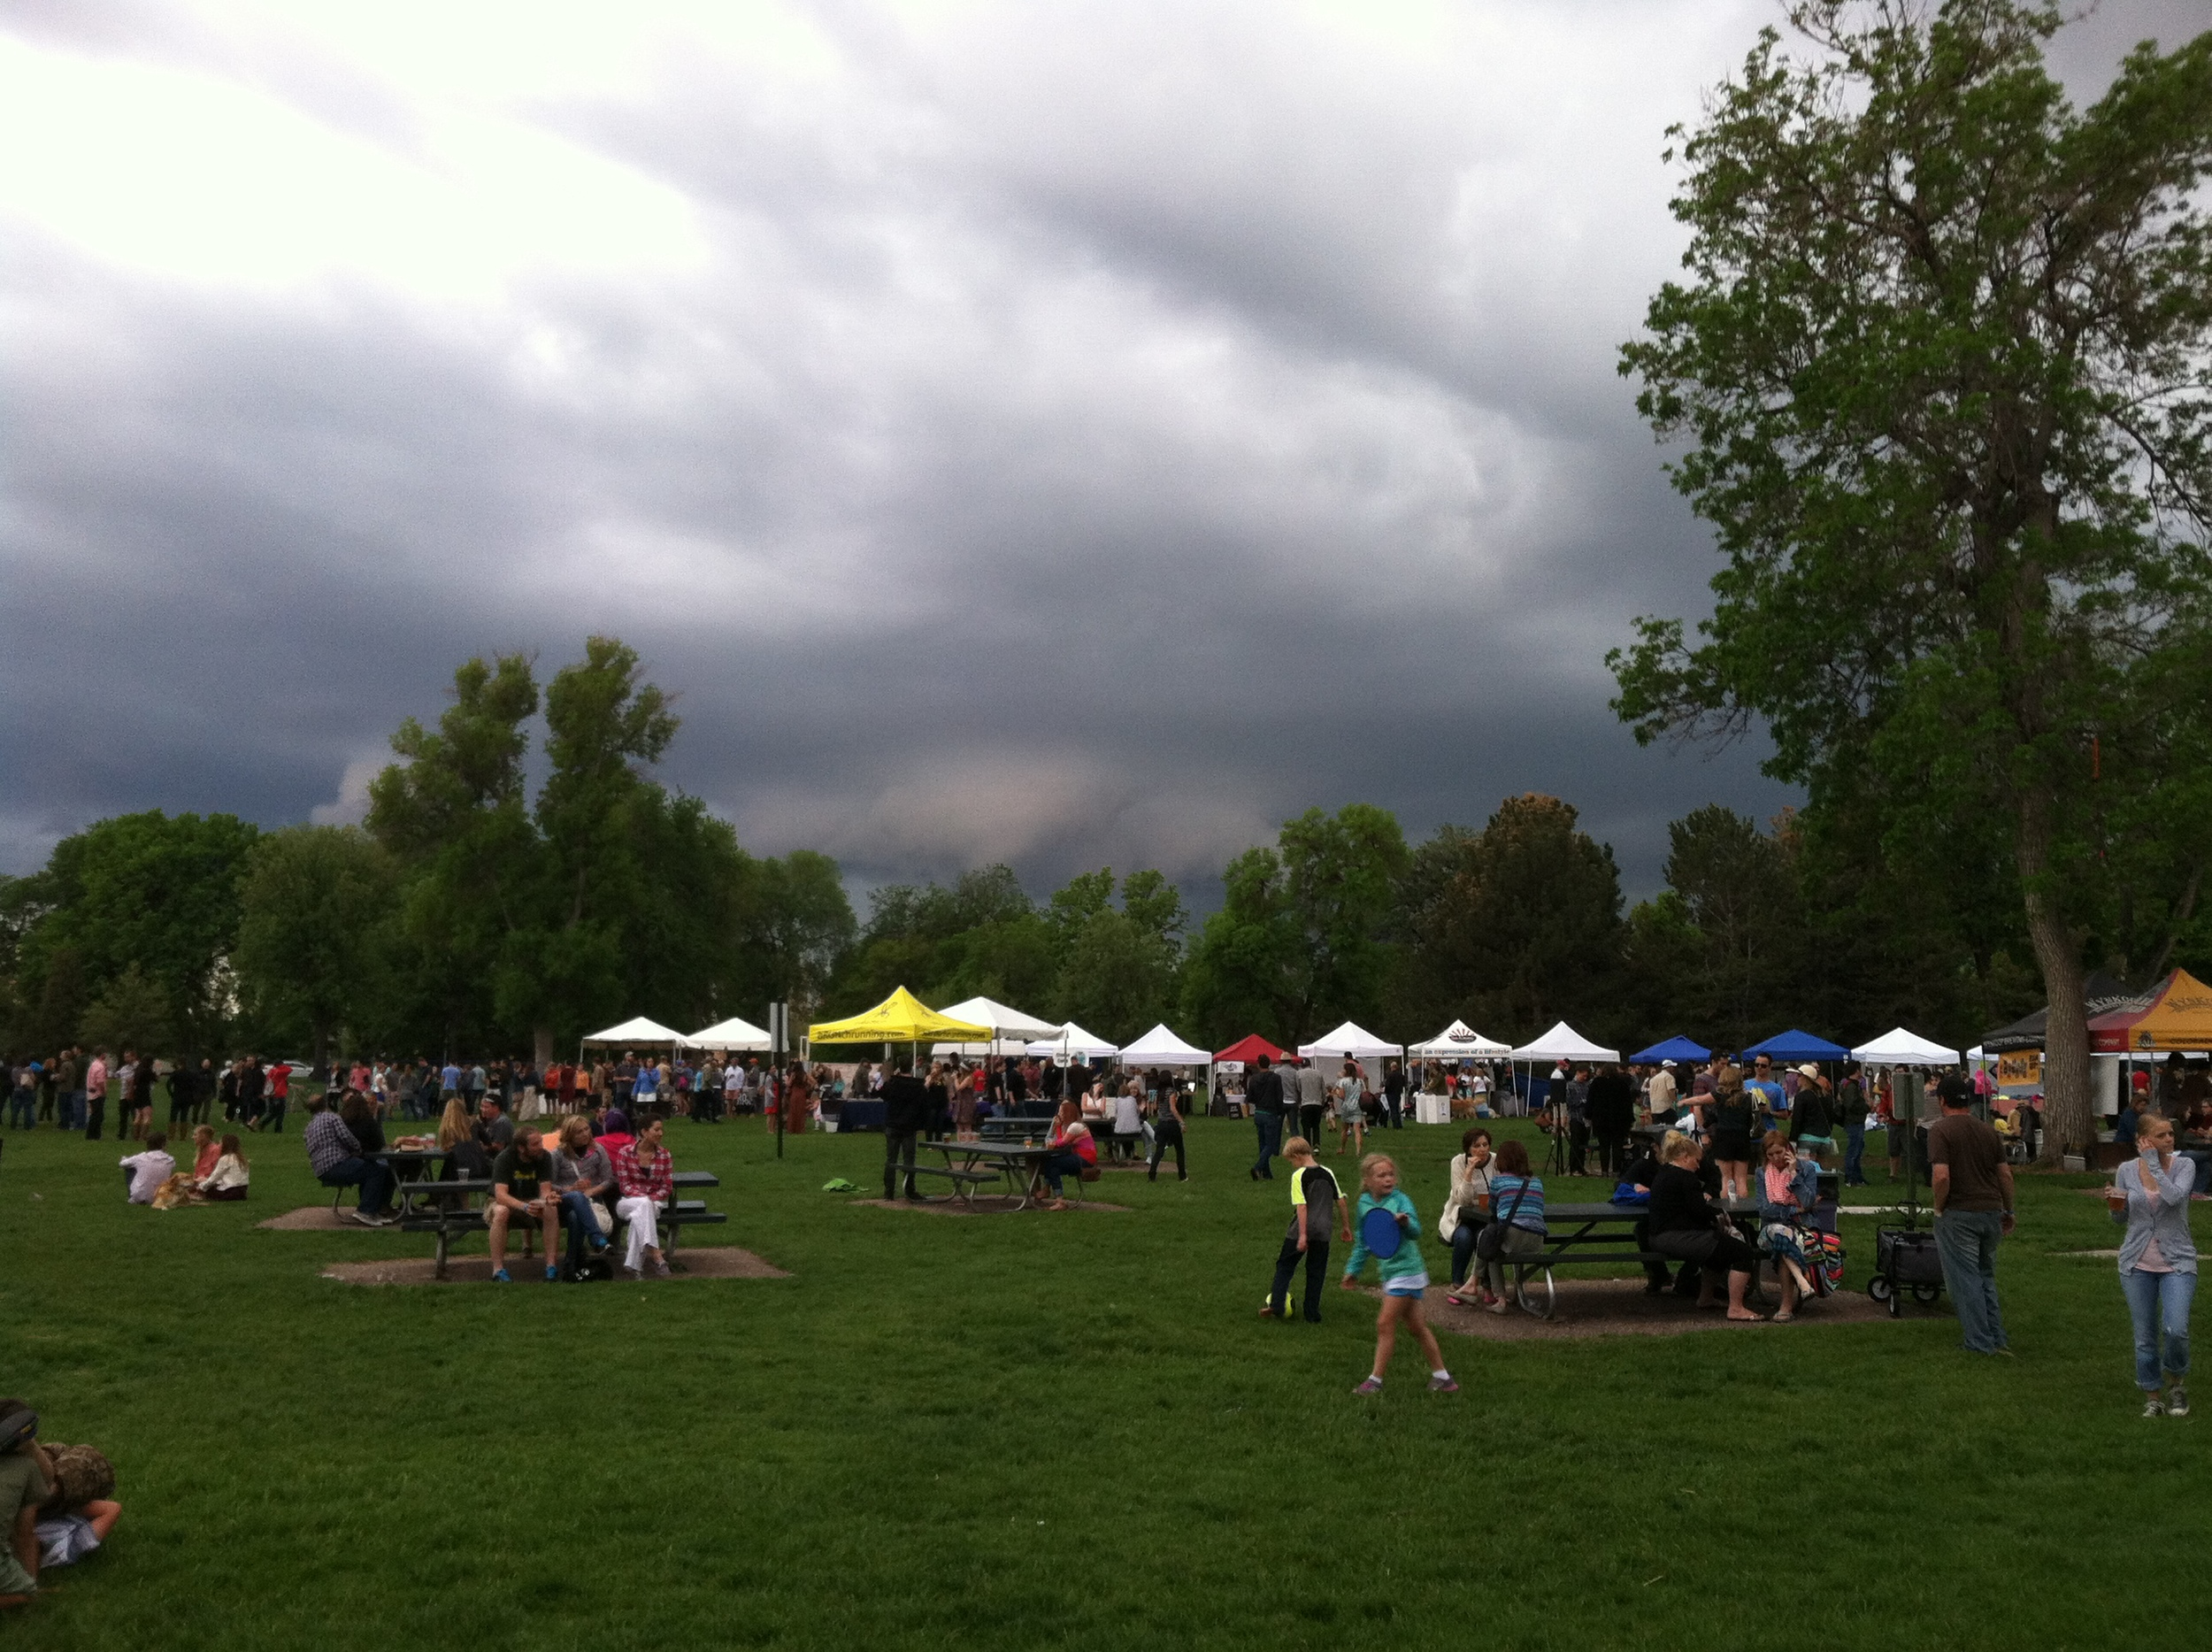 still can't believe it didn't rain all over us. the denver flea was meant to be.